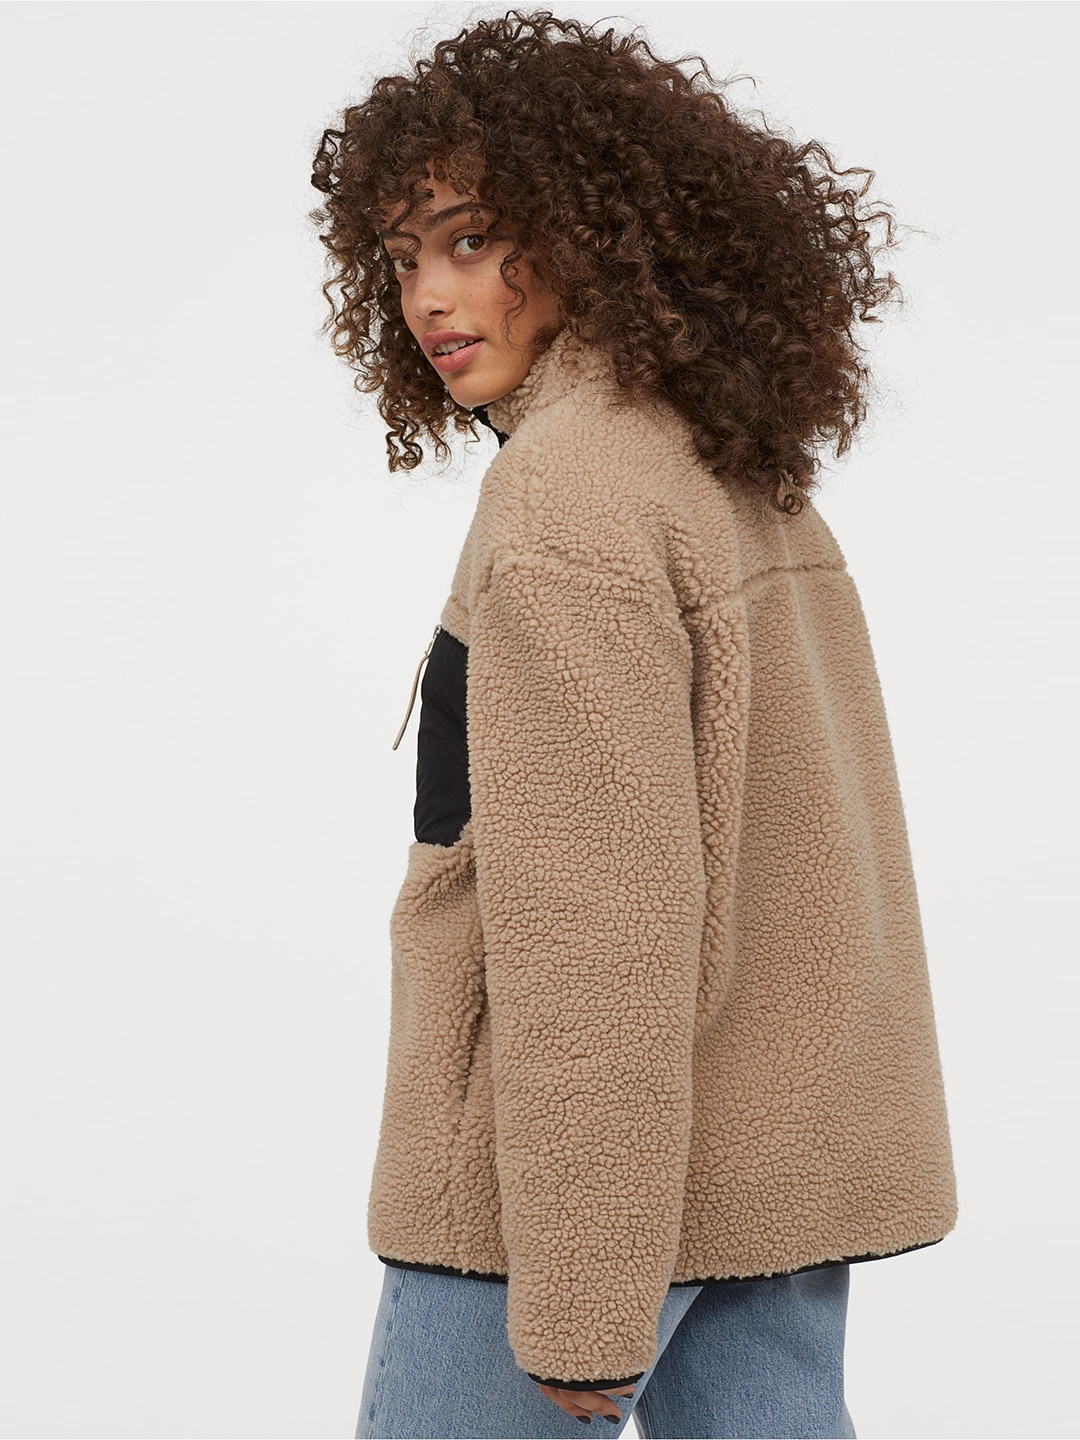 H&M Women Brown Pile Jacket With A Collar